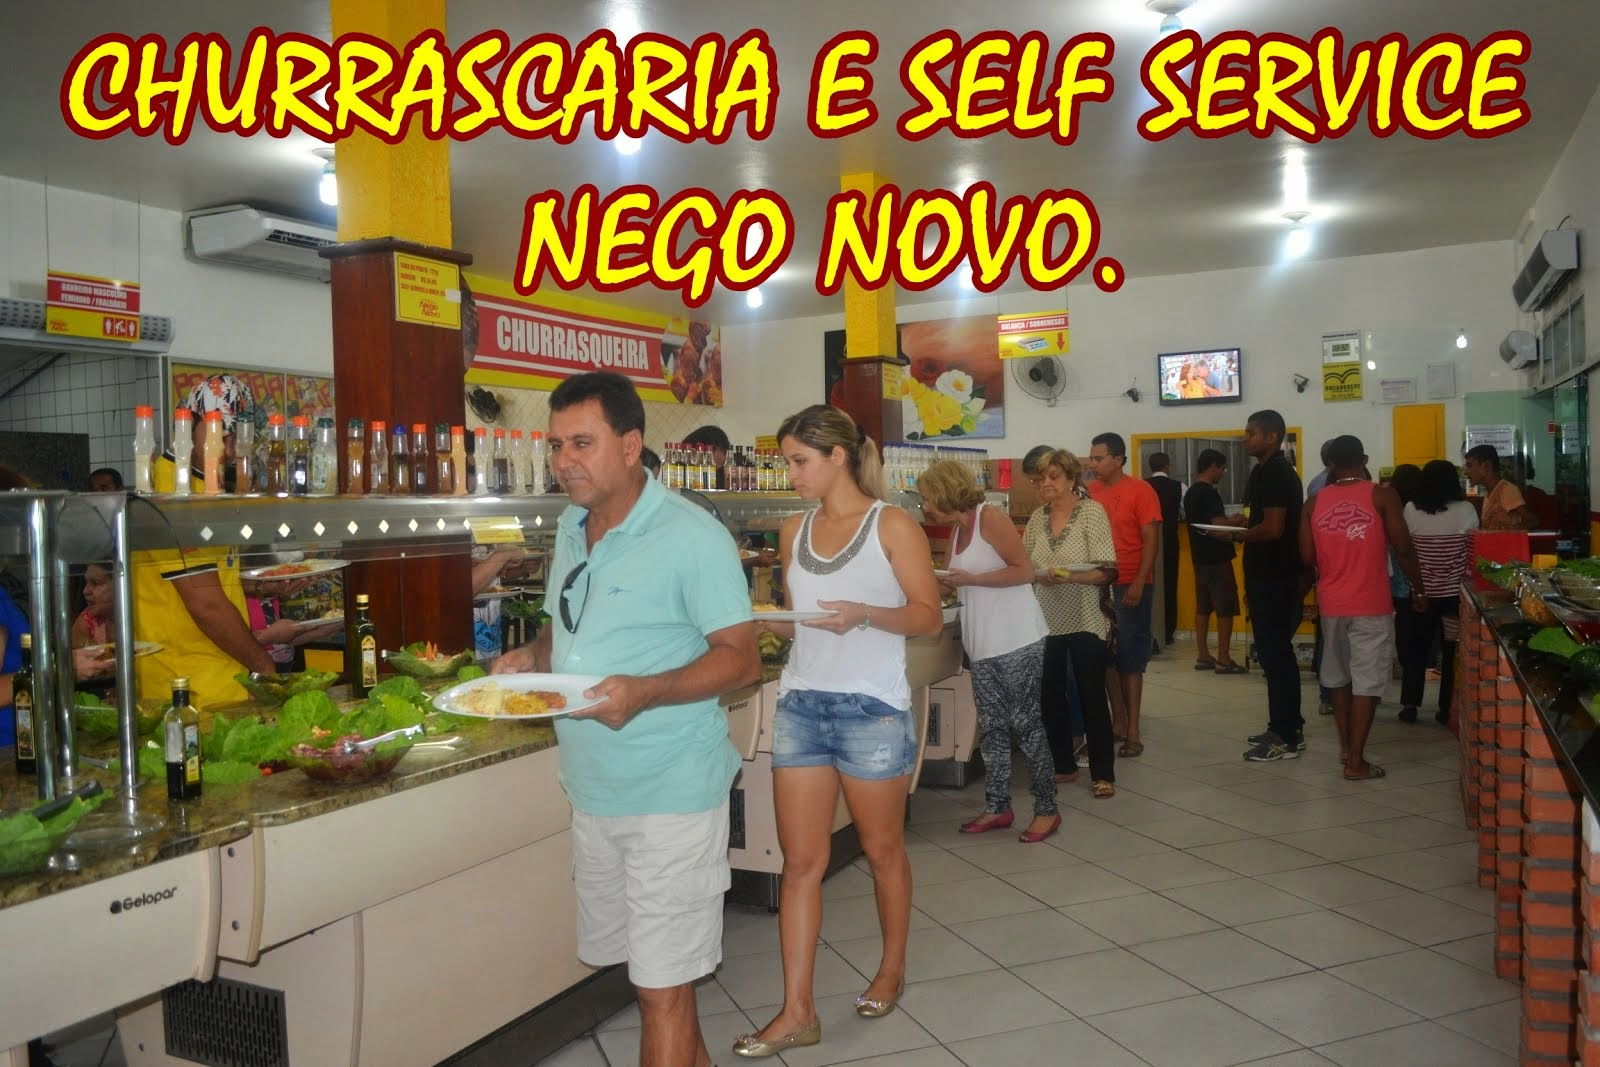 CHURRASCARIA E SELF SERVICE NEGO NOVO.